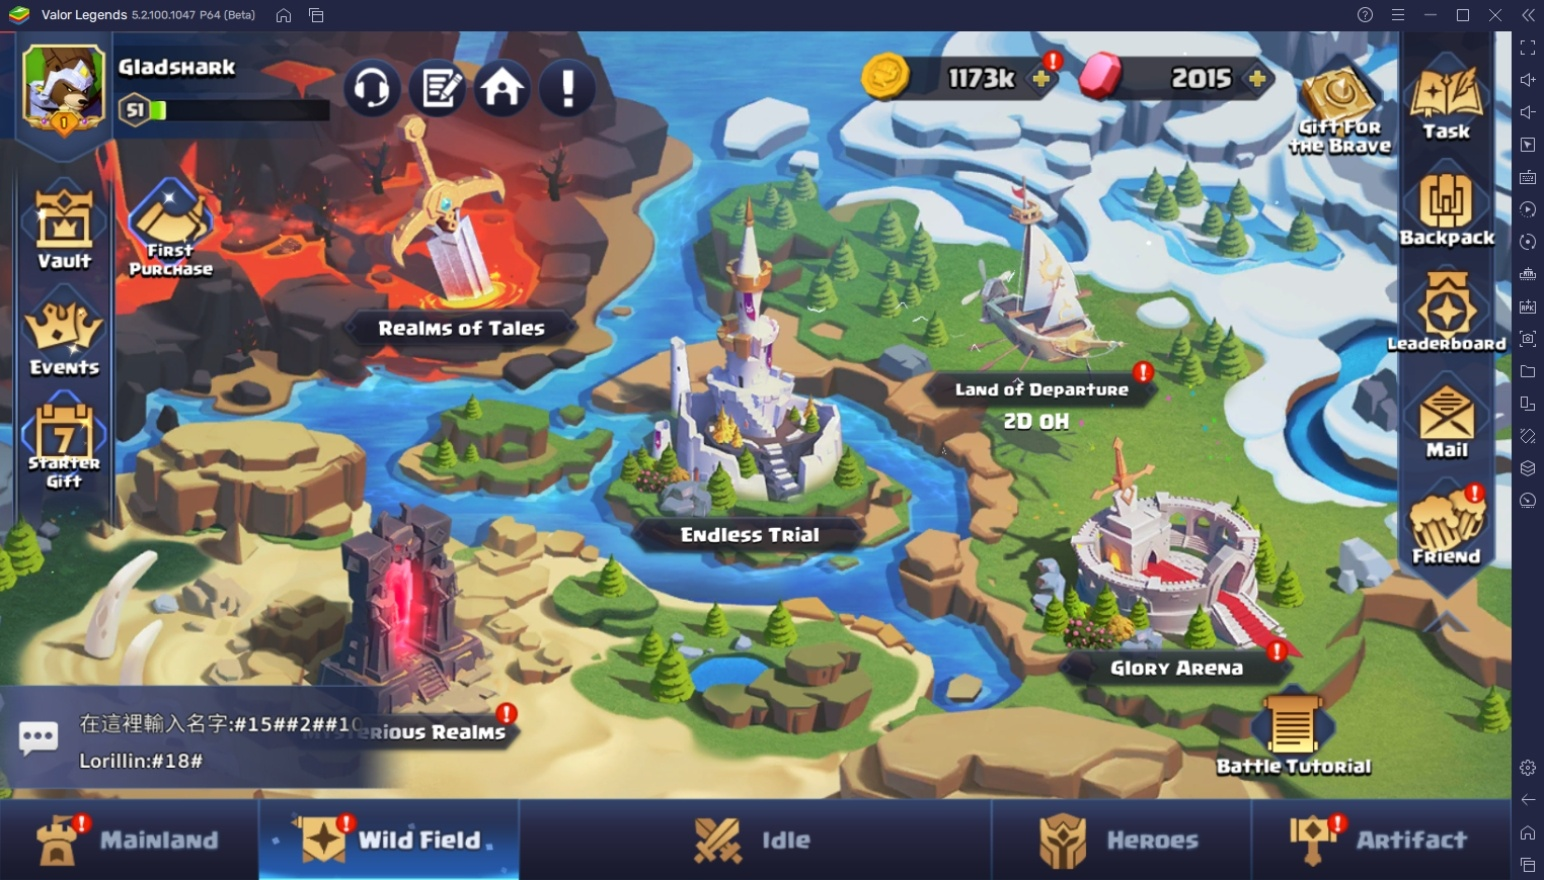 BlueStacks' Beginners Guide to Playing Valor Legends: Eternity